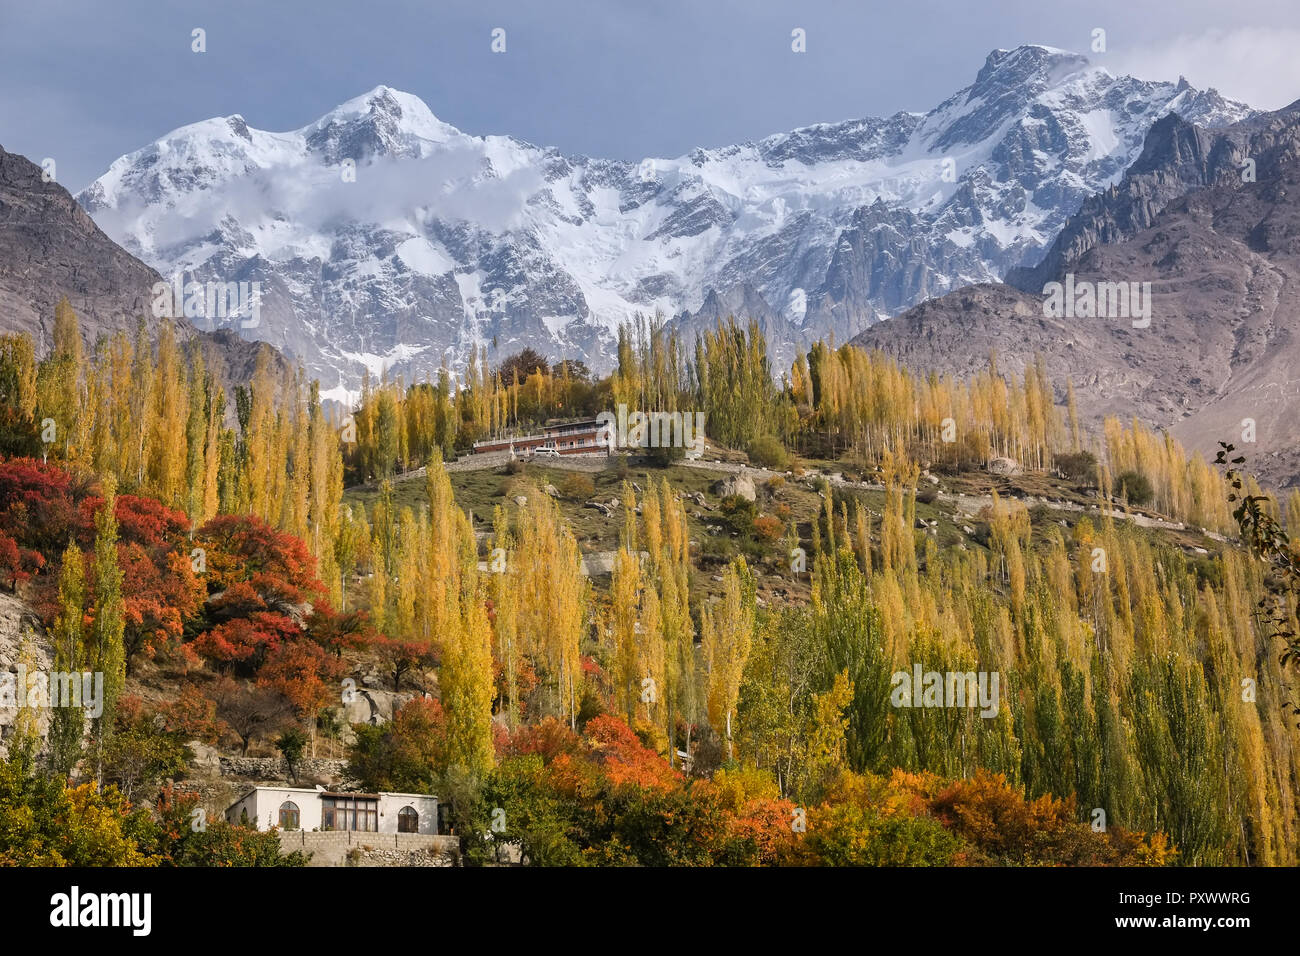 Autumn scene in Karimabad show colorful leaves and trees with snow capped mountains behind, Hunza valley, Gilgit-Baltistan, Pakistan. - Stock Image